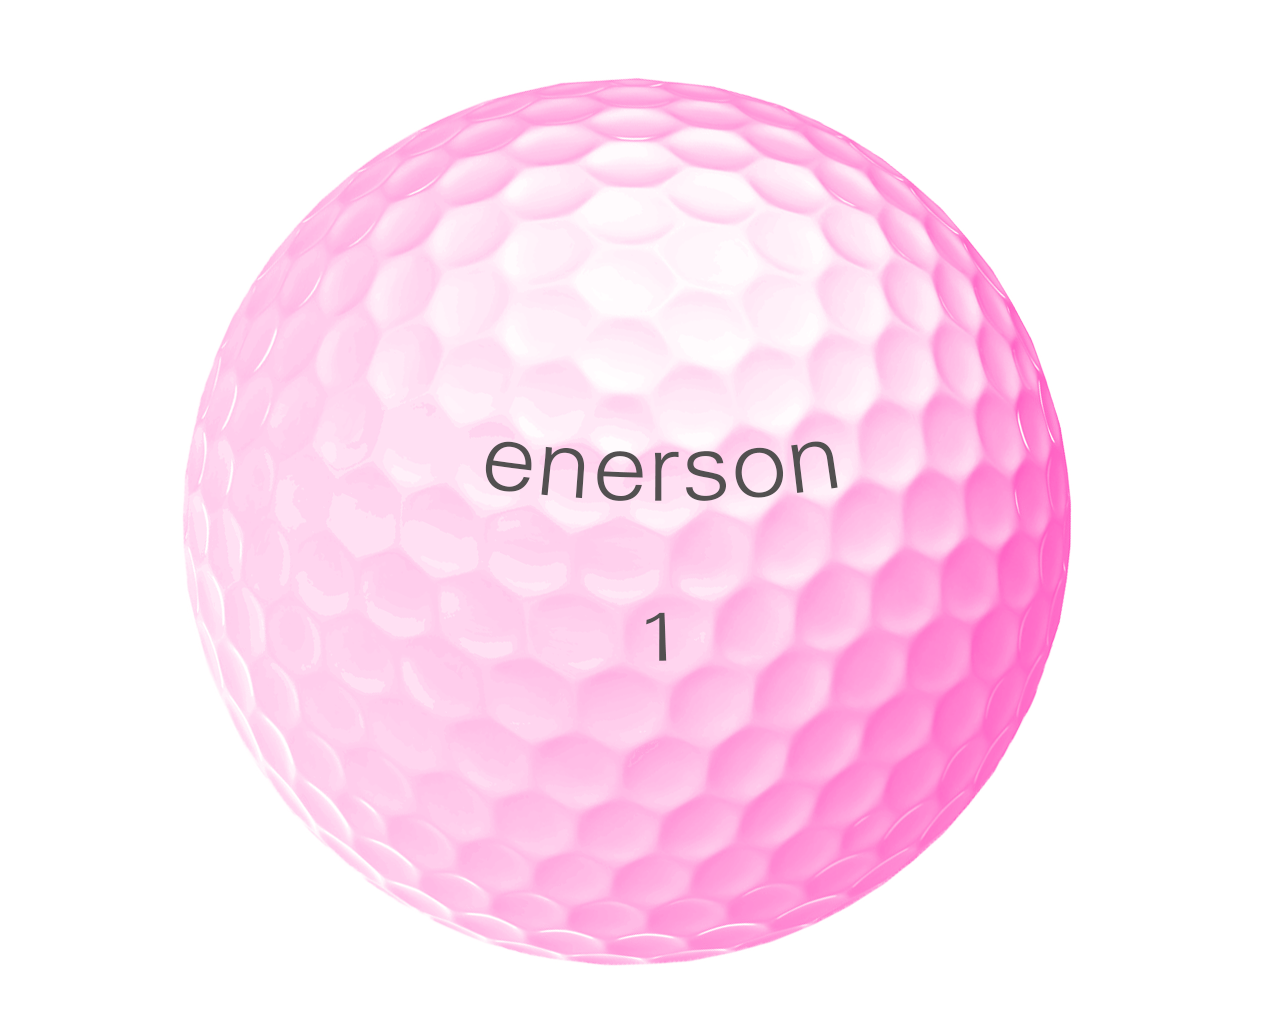 enerson-golf-ball4